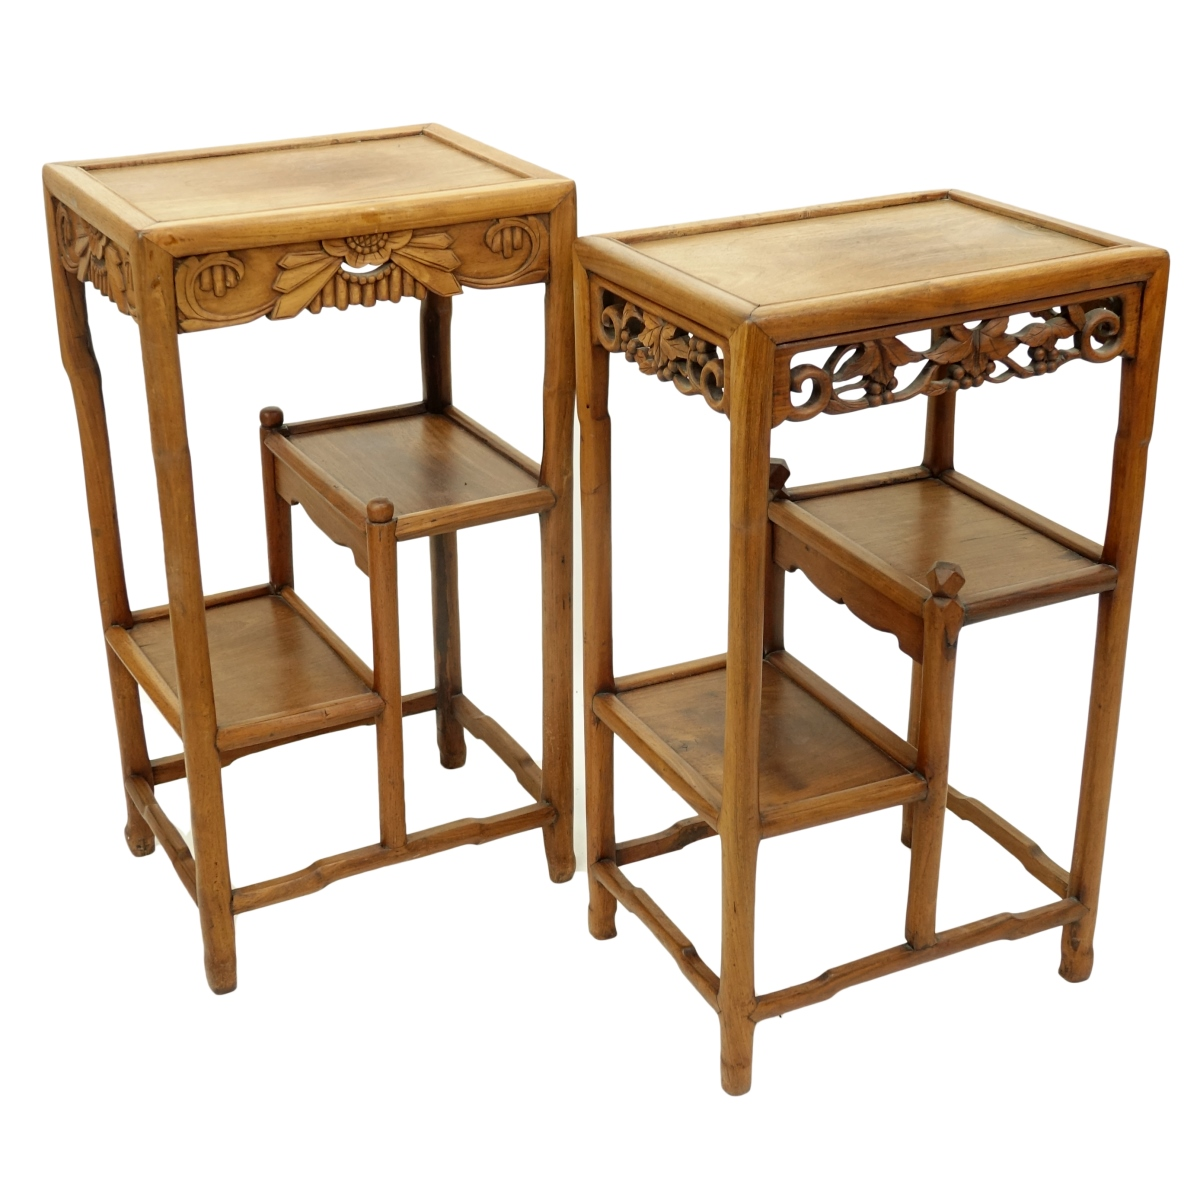 Two (2) Antique Chinese Carved Hardwood Stands